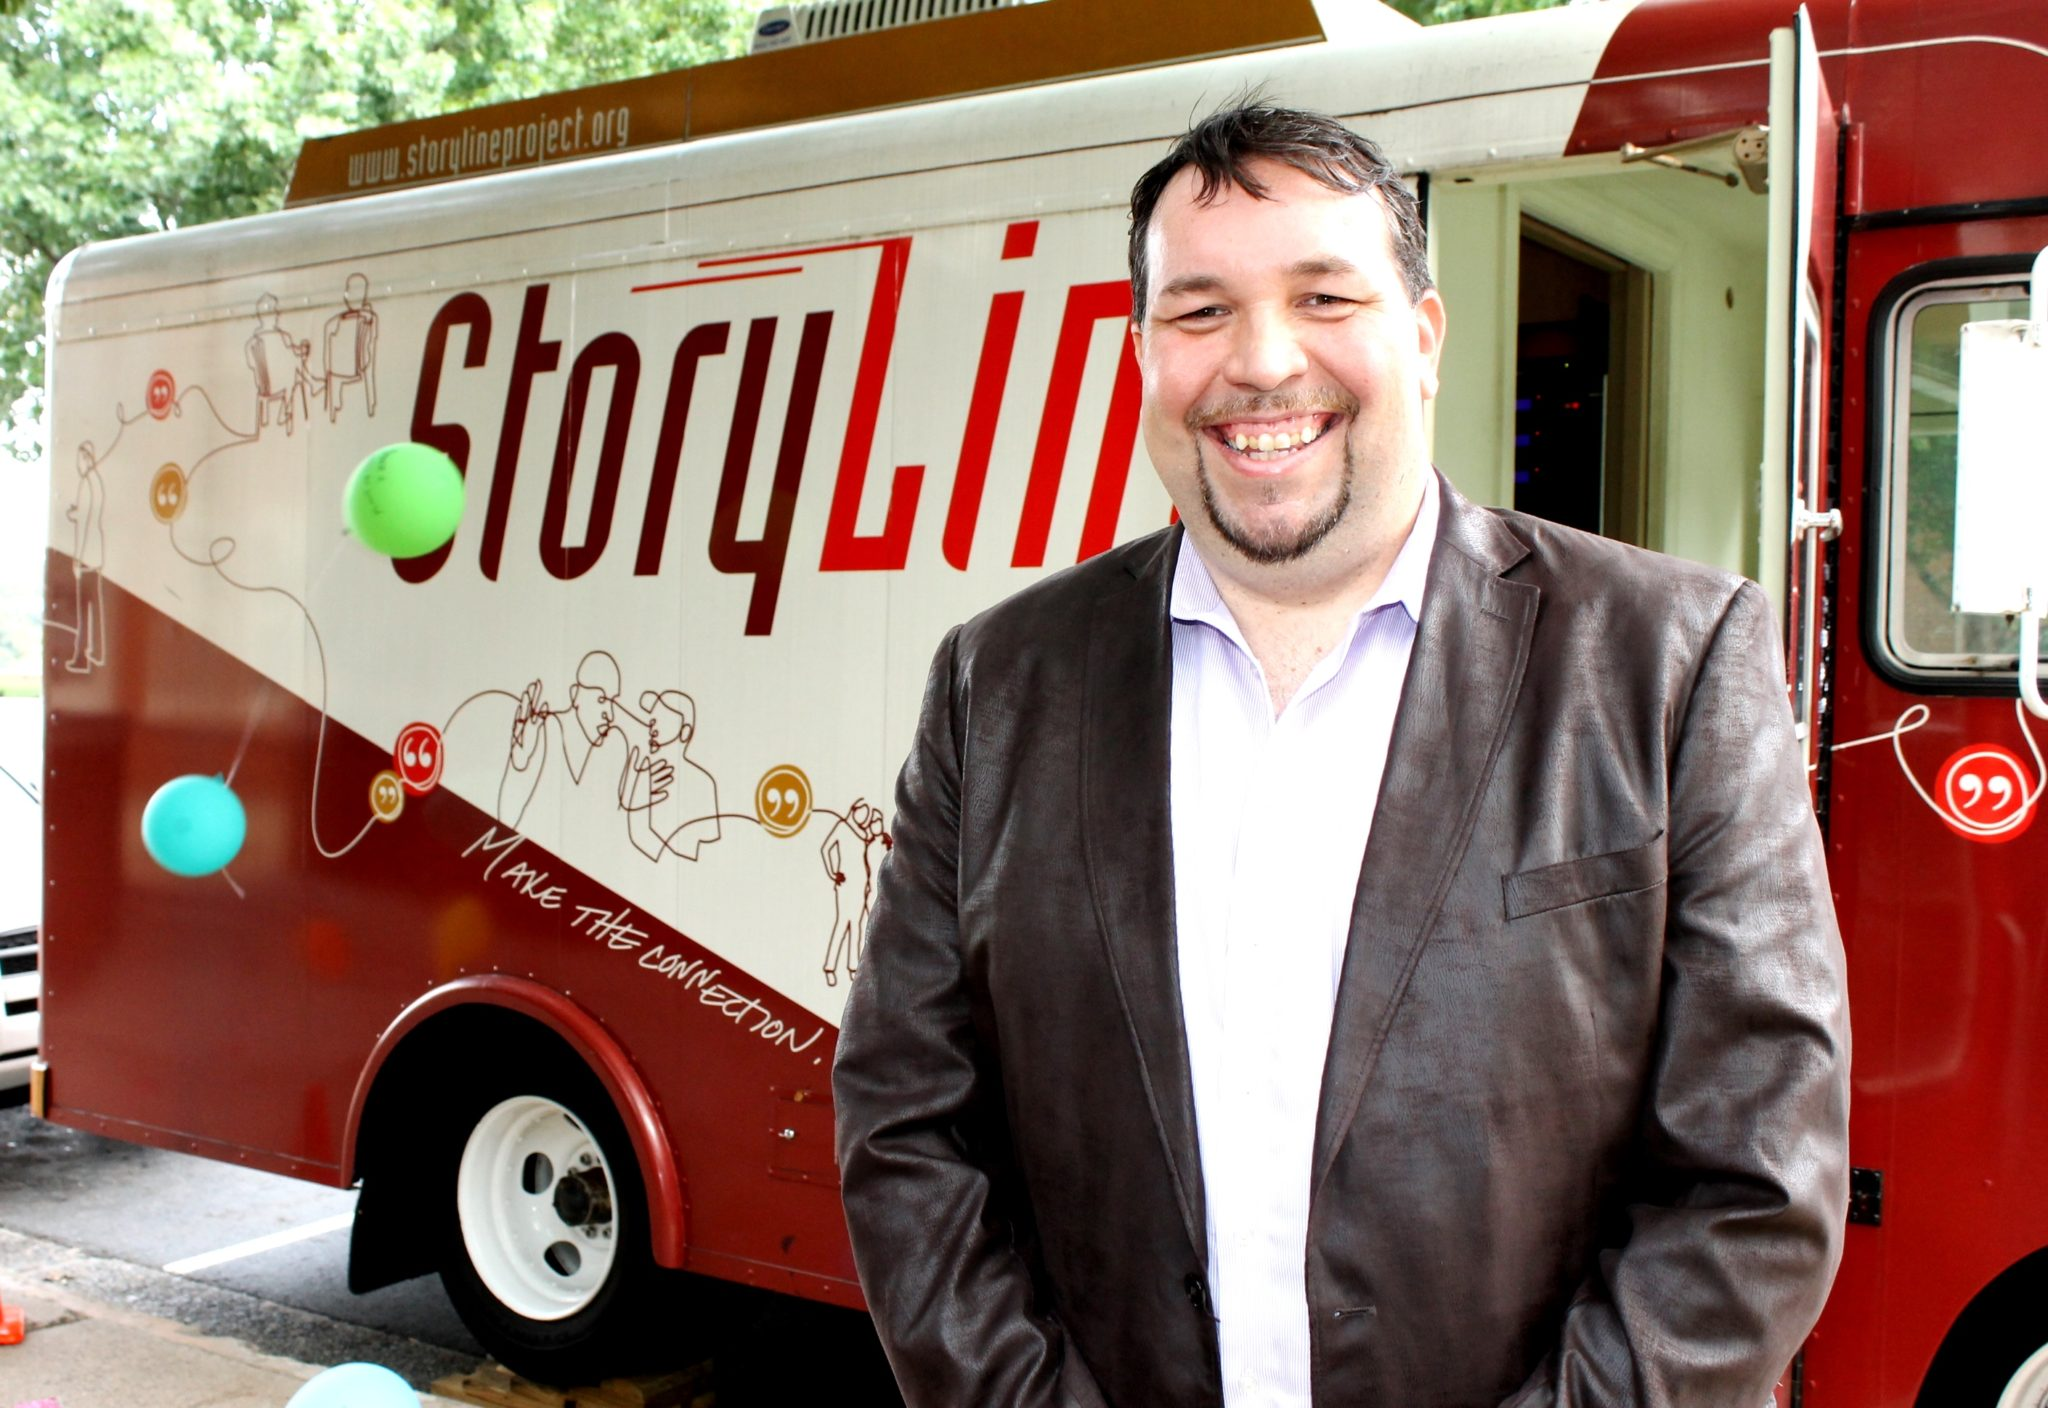 Gavin P Smith - Storyline Bus Project - Interview - Wake Forest University